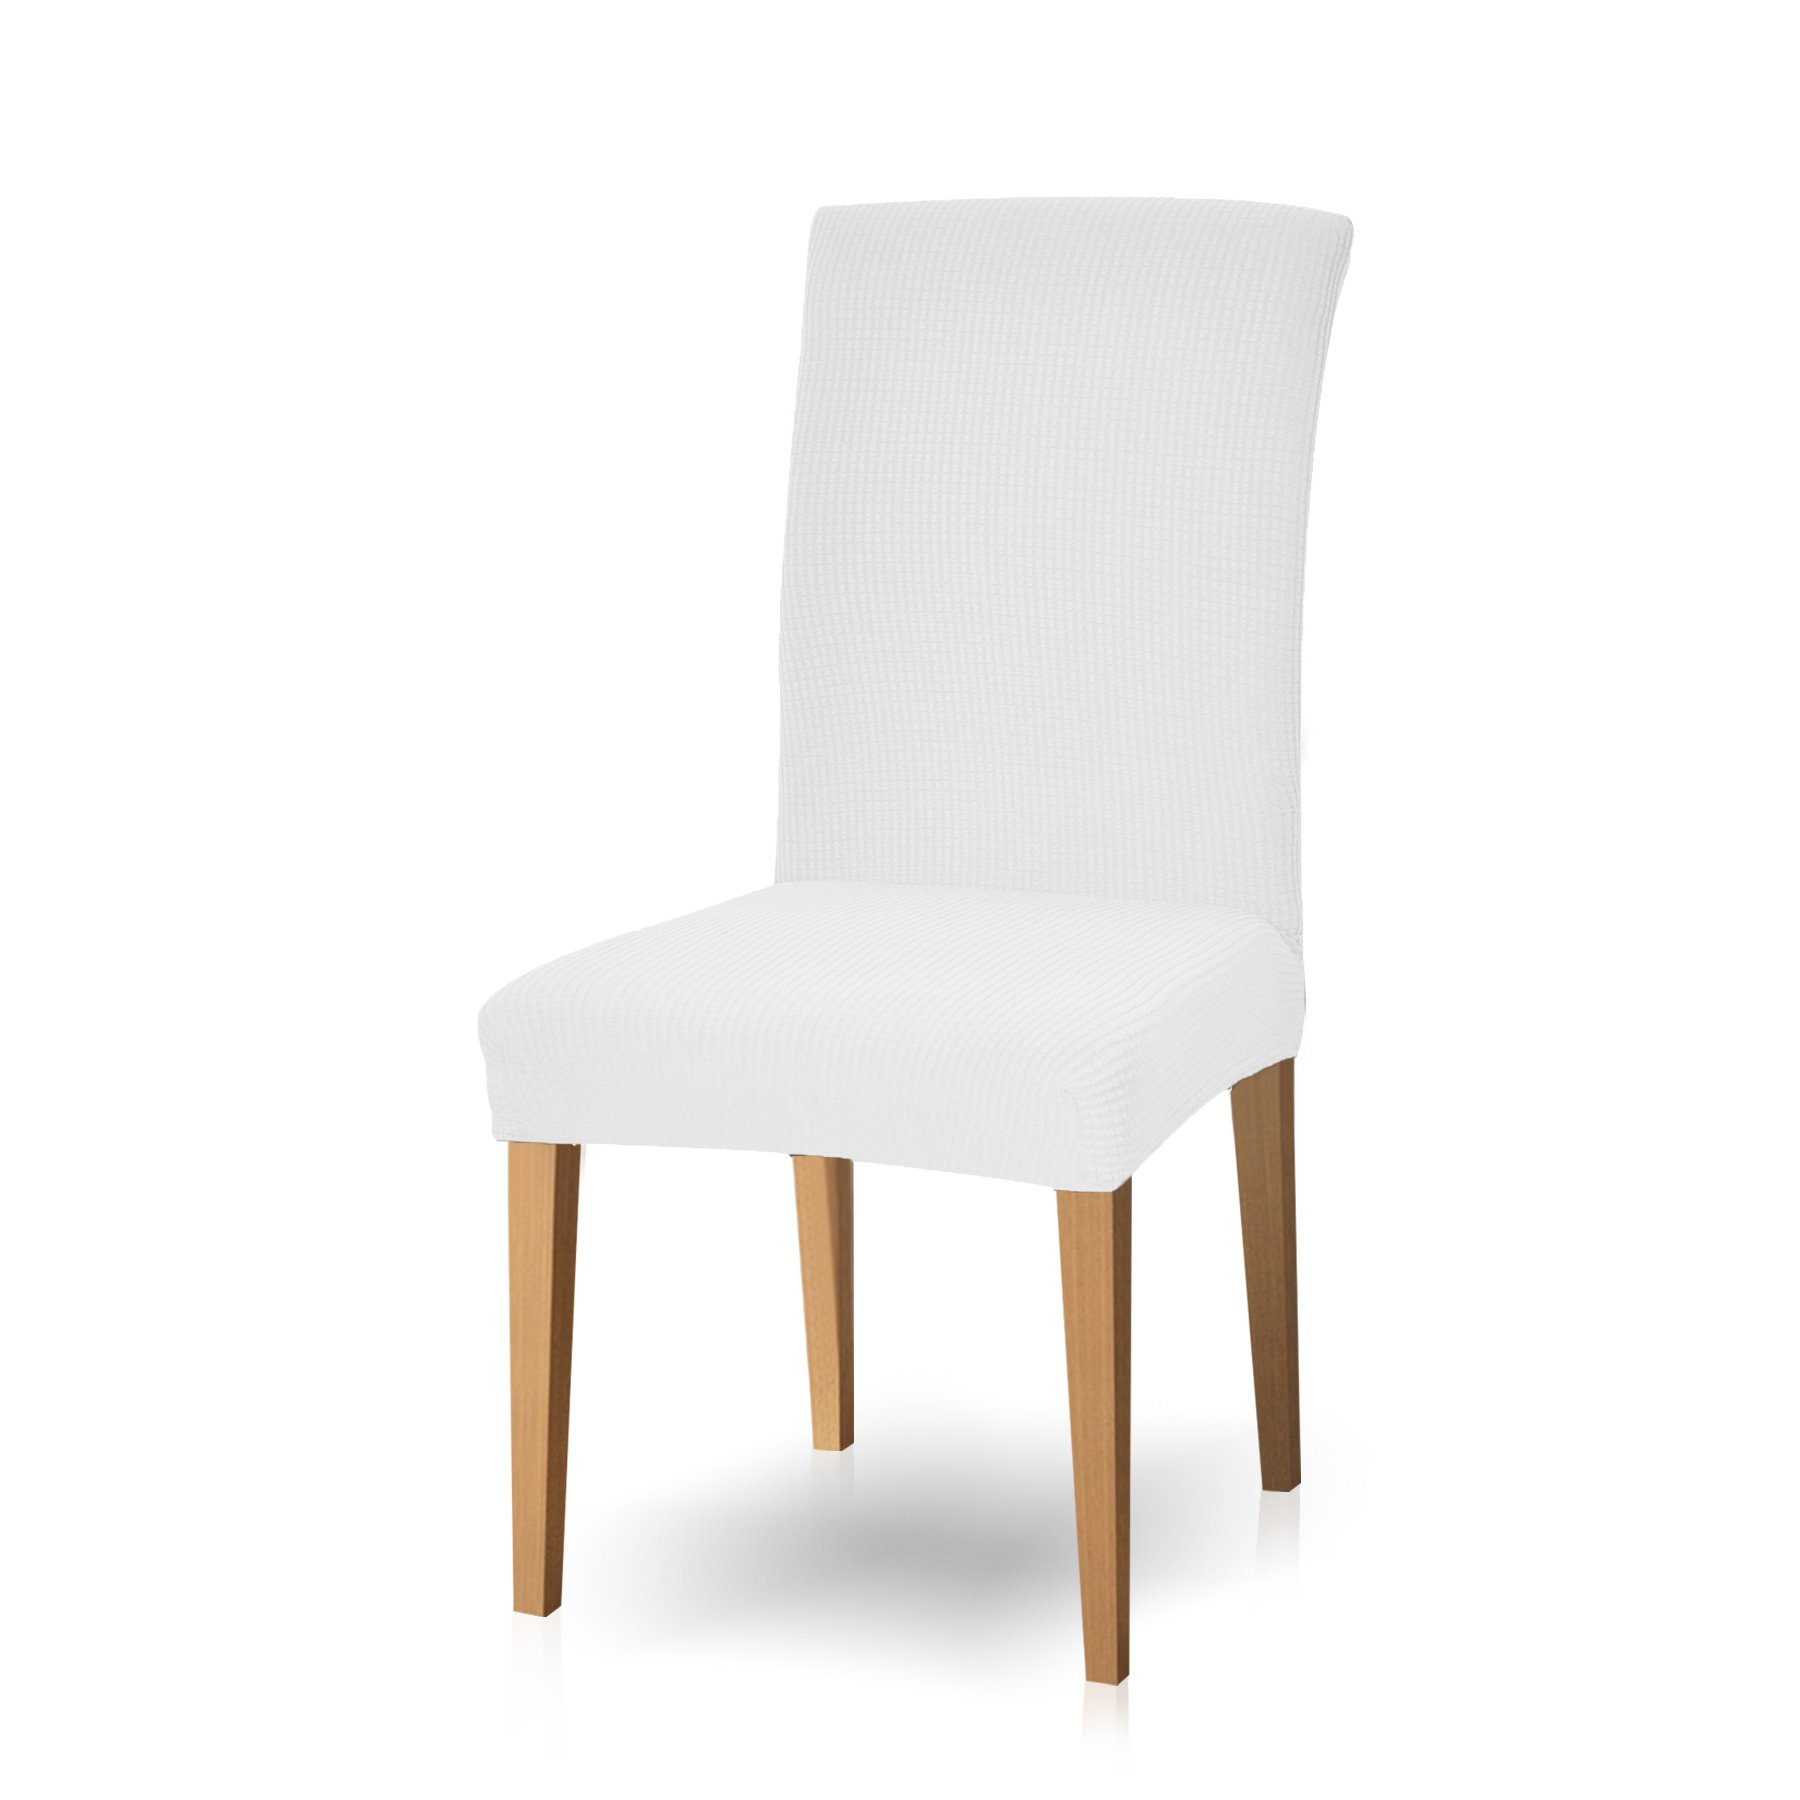 Subrtex Dyed Jacquard Stretch Dining Room Chair Slipcovers (4, Off-White Checks)